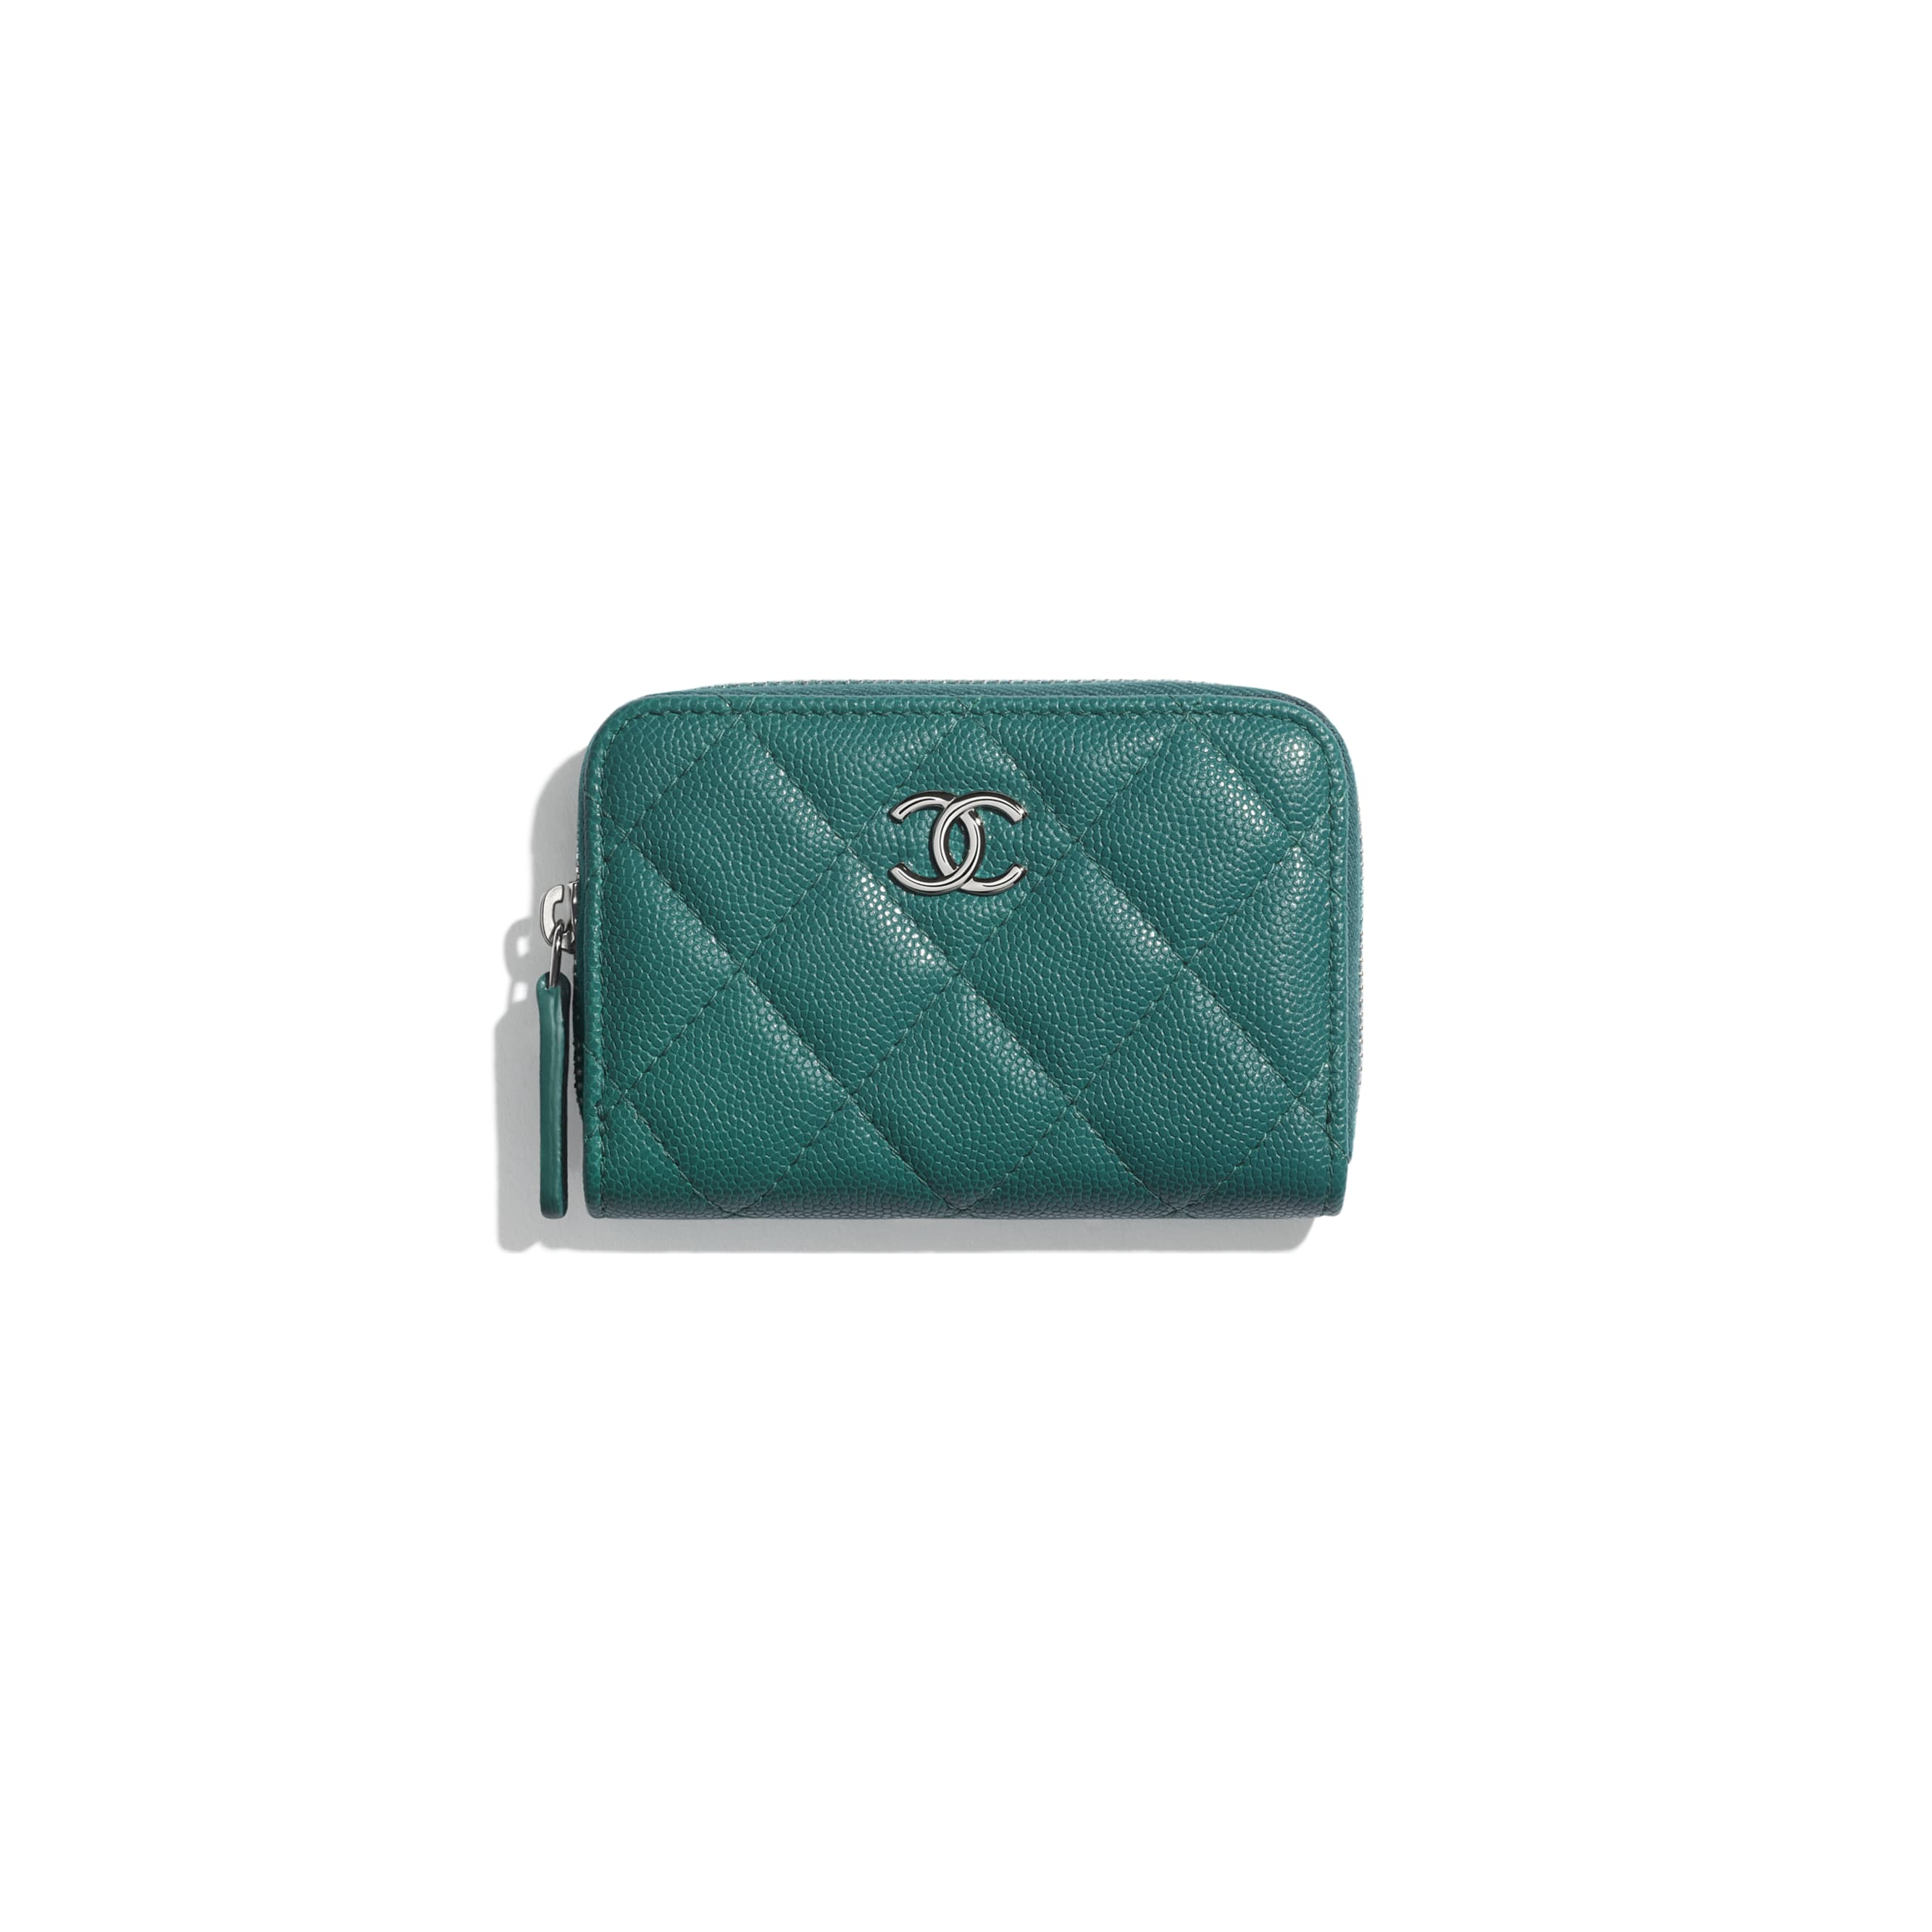 Zipped Coin Purse - Green & Pink - Grained Calfskin, Fabric & Silver-Tone Metal - CHANEL - Default view - see standard sized version